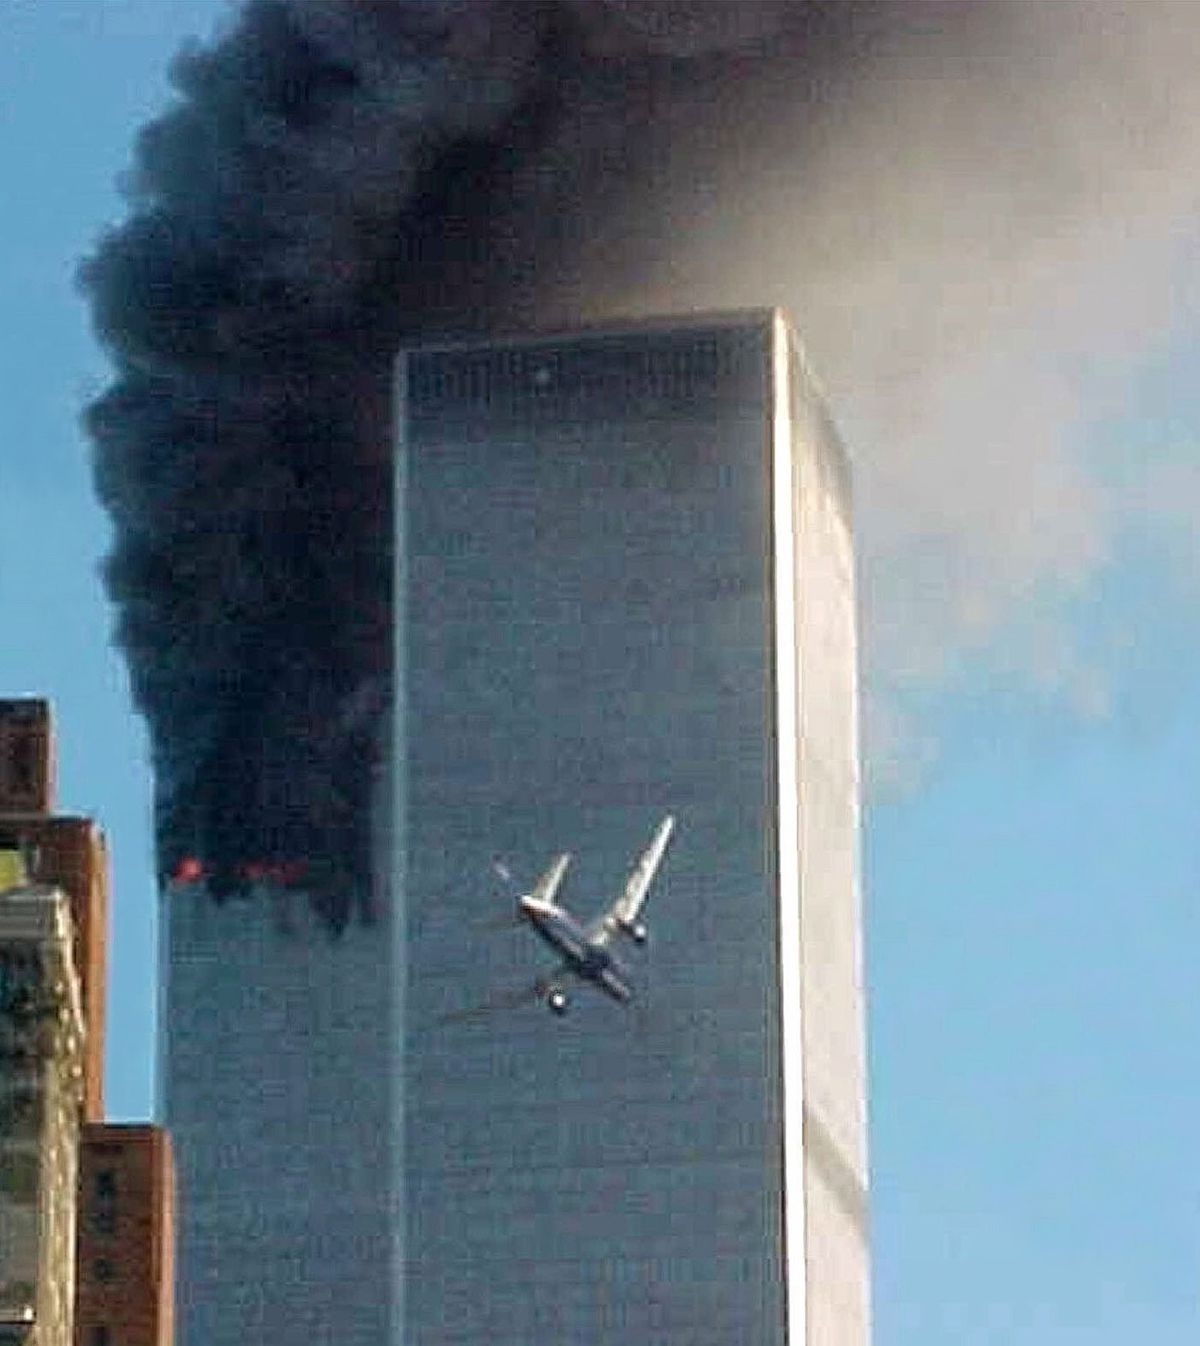 A jet airliner is lined up on one of the World Trade Center towers in New York Tuesday, Sept. 11, 2001.